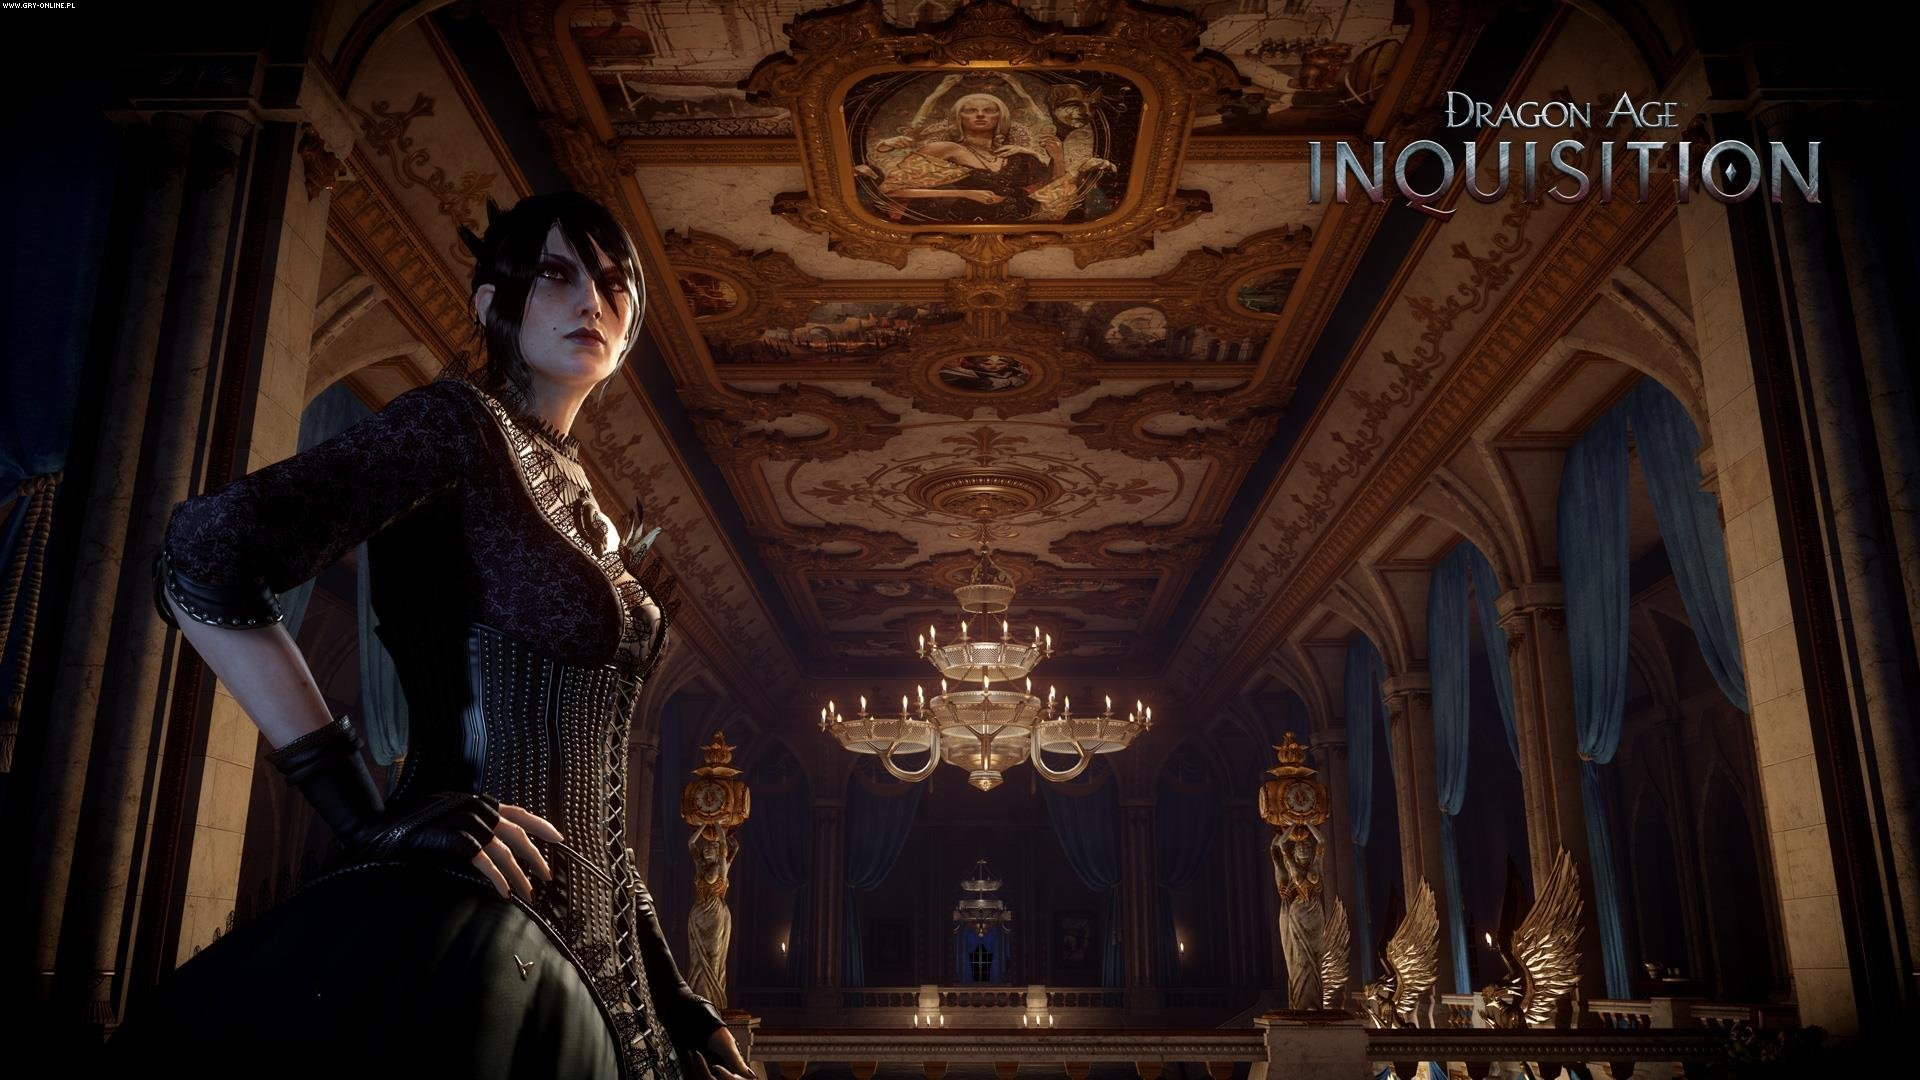 Dragon Age: Inkwizycja PC, X360, PS3 Gry Screen 41/225, BioWare Corporation, Electronic Arts Inc.